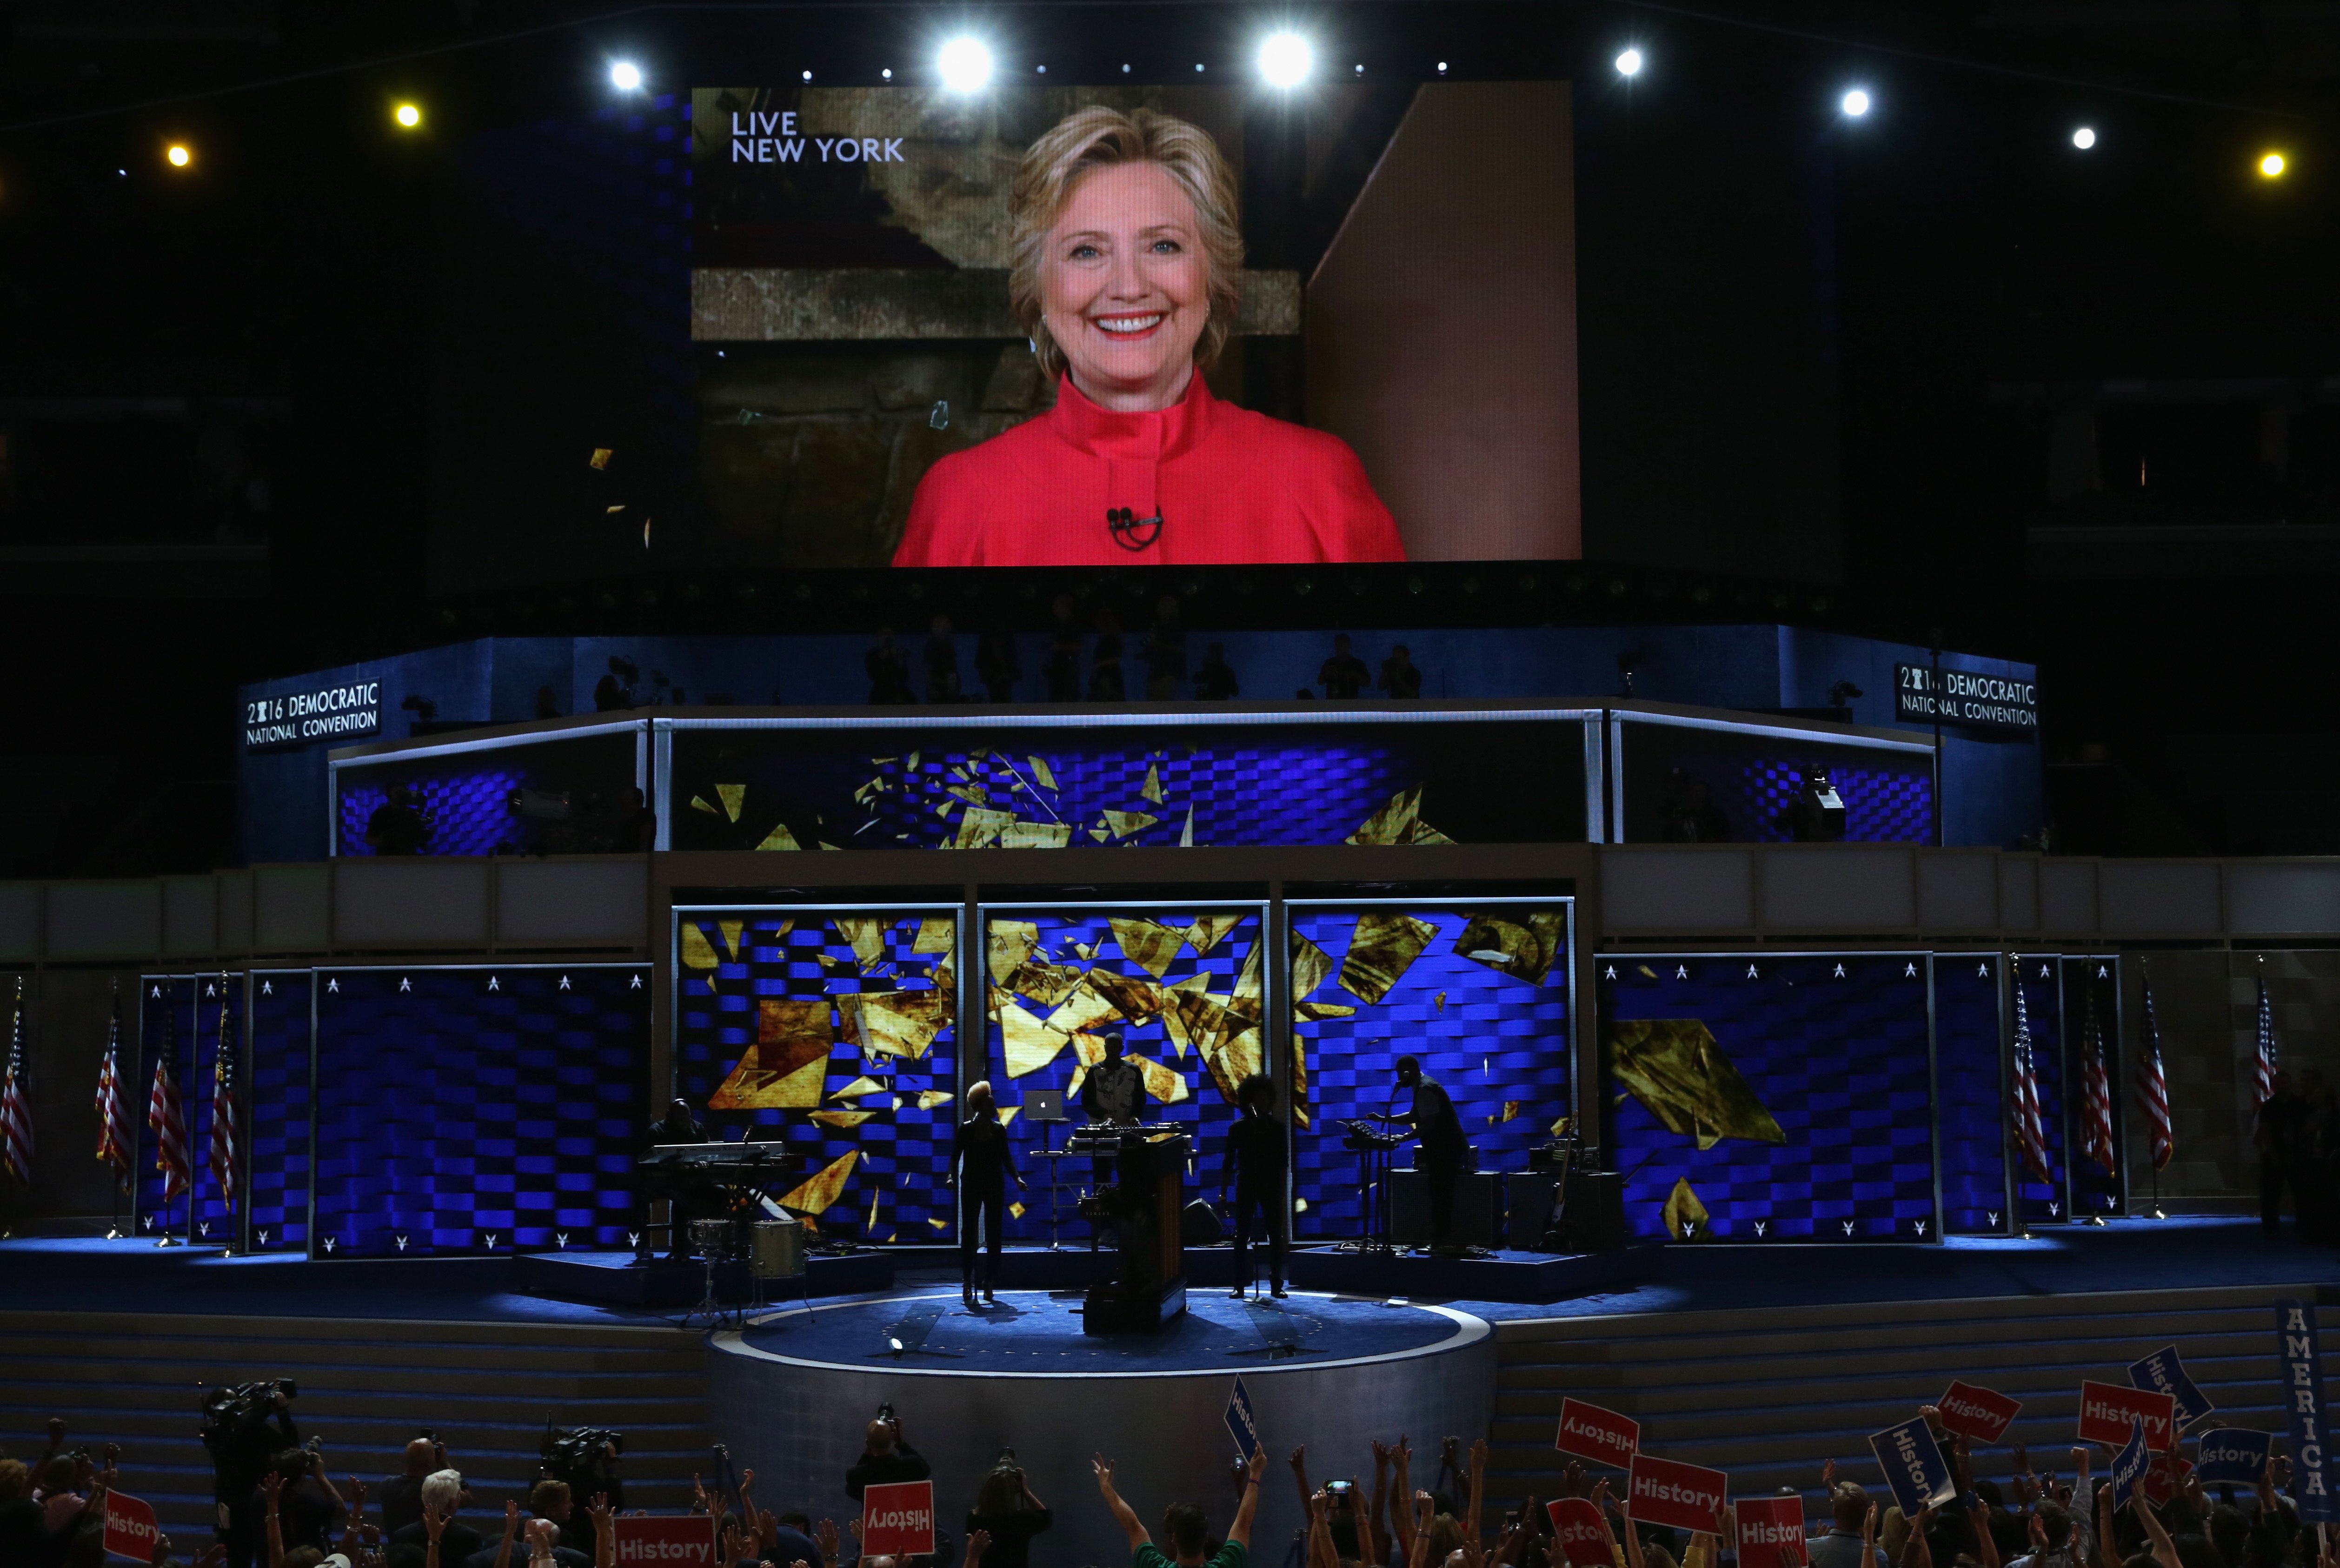 PHILADELPHIA, PA - JULY 26: Delegates cheer as a screen displays Democratic presidential candidate Hillary Clinton delivering remarks to the crowd during the evening session on the second day of the Democratic National Convention at the Wells Fargo Center, July 26, 2016 in Philadelphia, Pennsylvania. Democratic presidential candidate Hillary Clinton received the number of votes needed to secure the party's nomination. An estimated 50,000 people are expected in Philadelphia, including hundreds of protesters and members of the media. The four-day Democratic National Convention kicked off July 25. (Photo by Alex Wong/Getty Images)